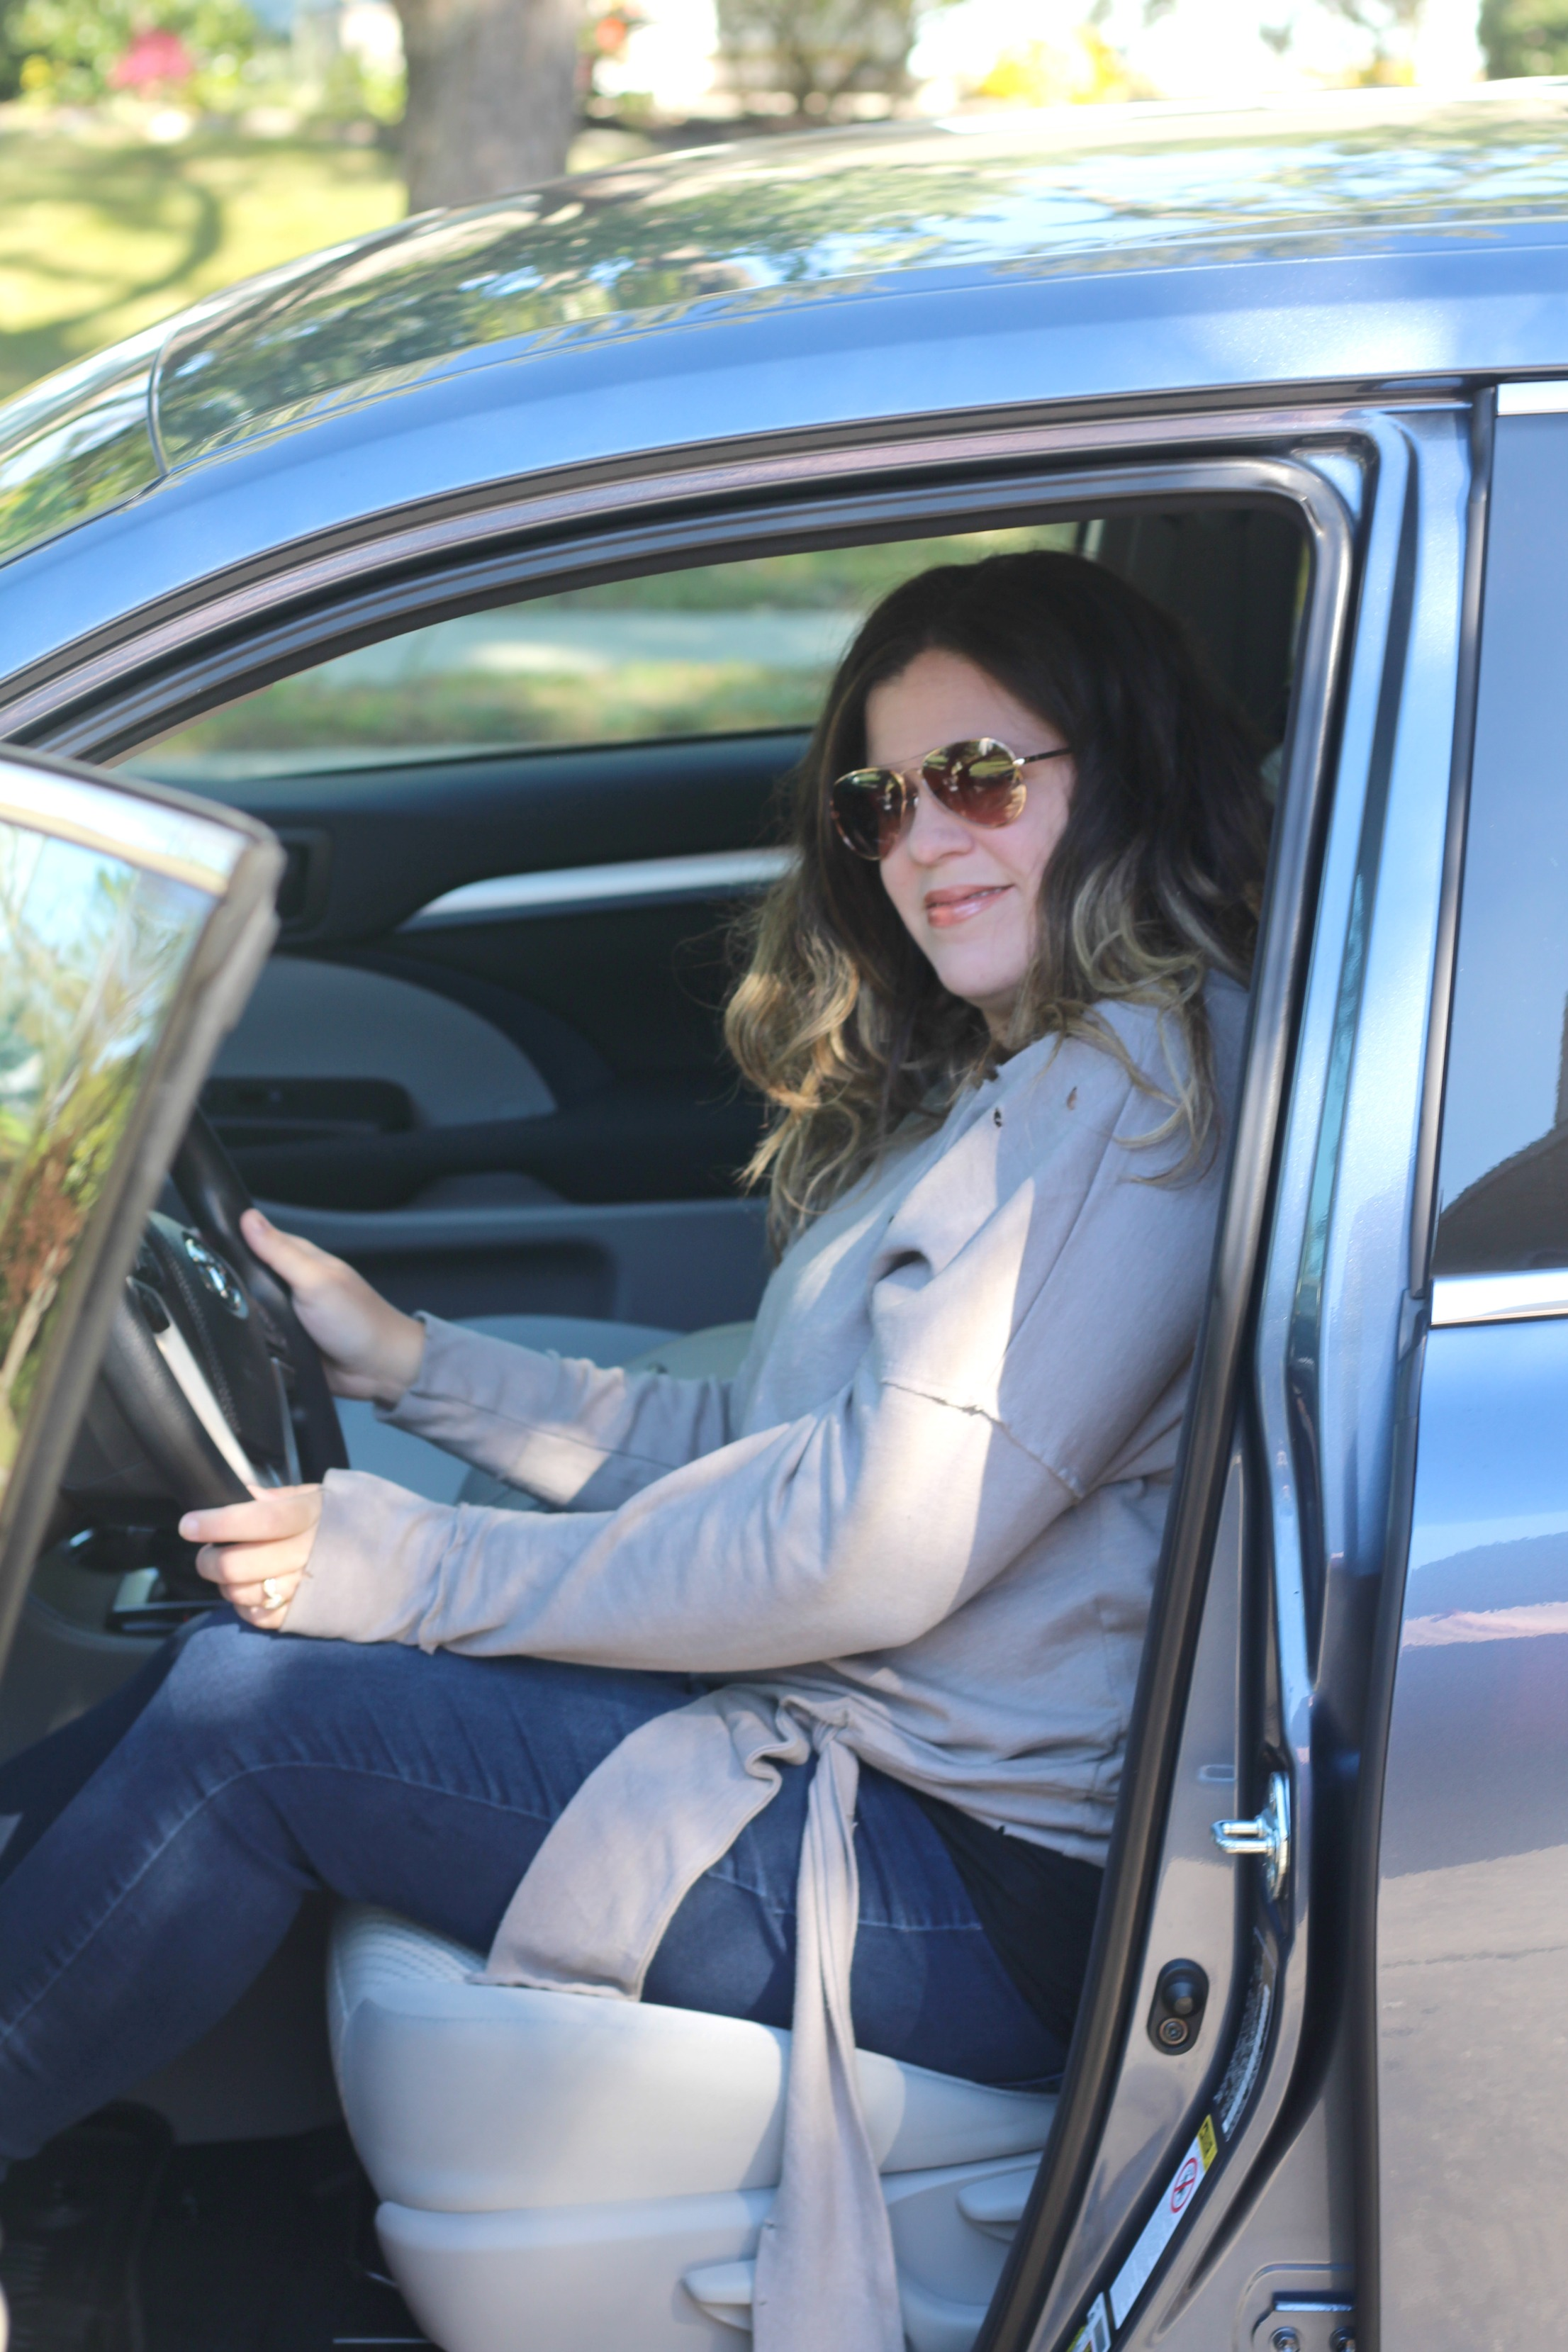 Road Trip Diaries - Hershey/Harrisburg in the 2017 Toyota Highlander